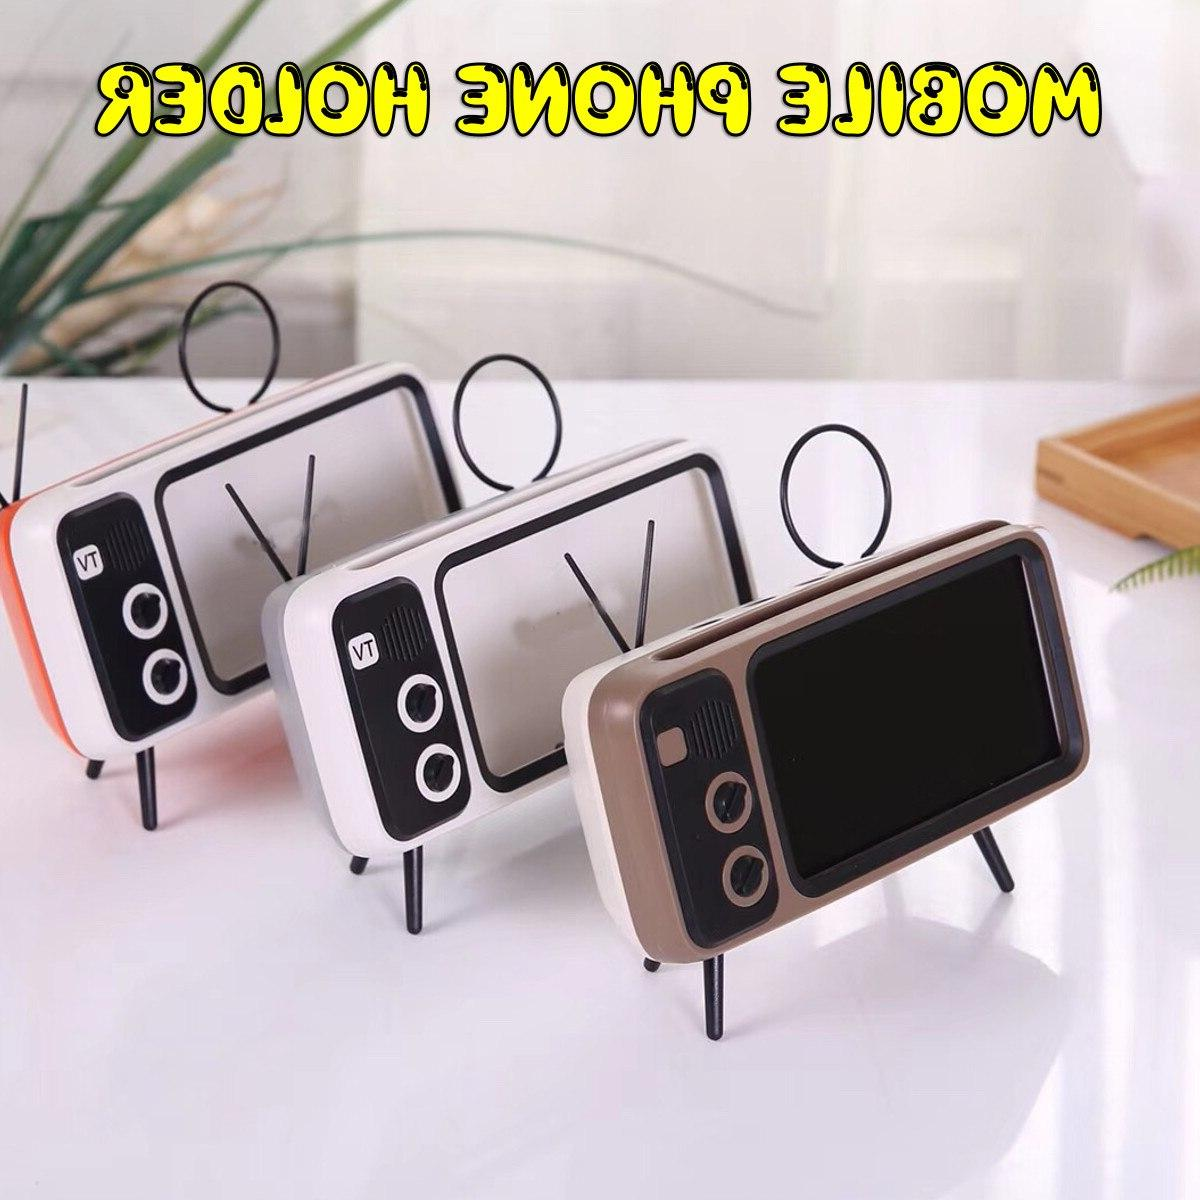 Phone <font><b>Bluetooth</b></font> Music Player Retro Home Audio Electric Mini <font><b>Wireless</b></font>